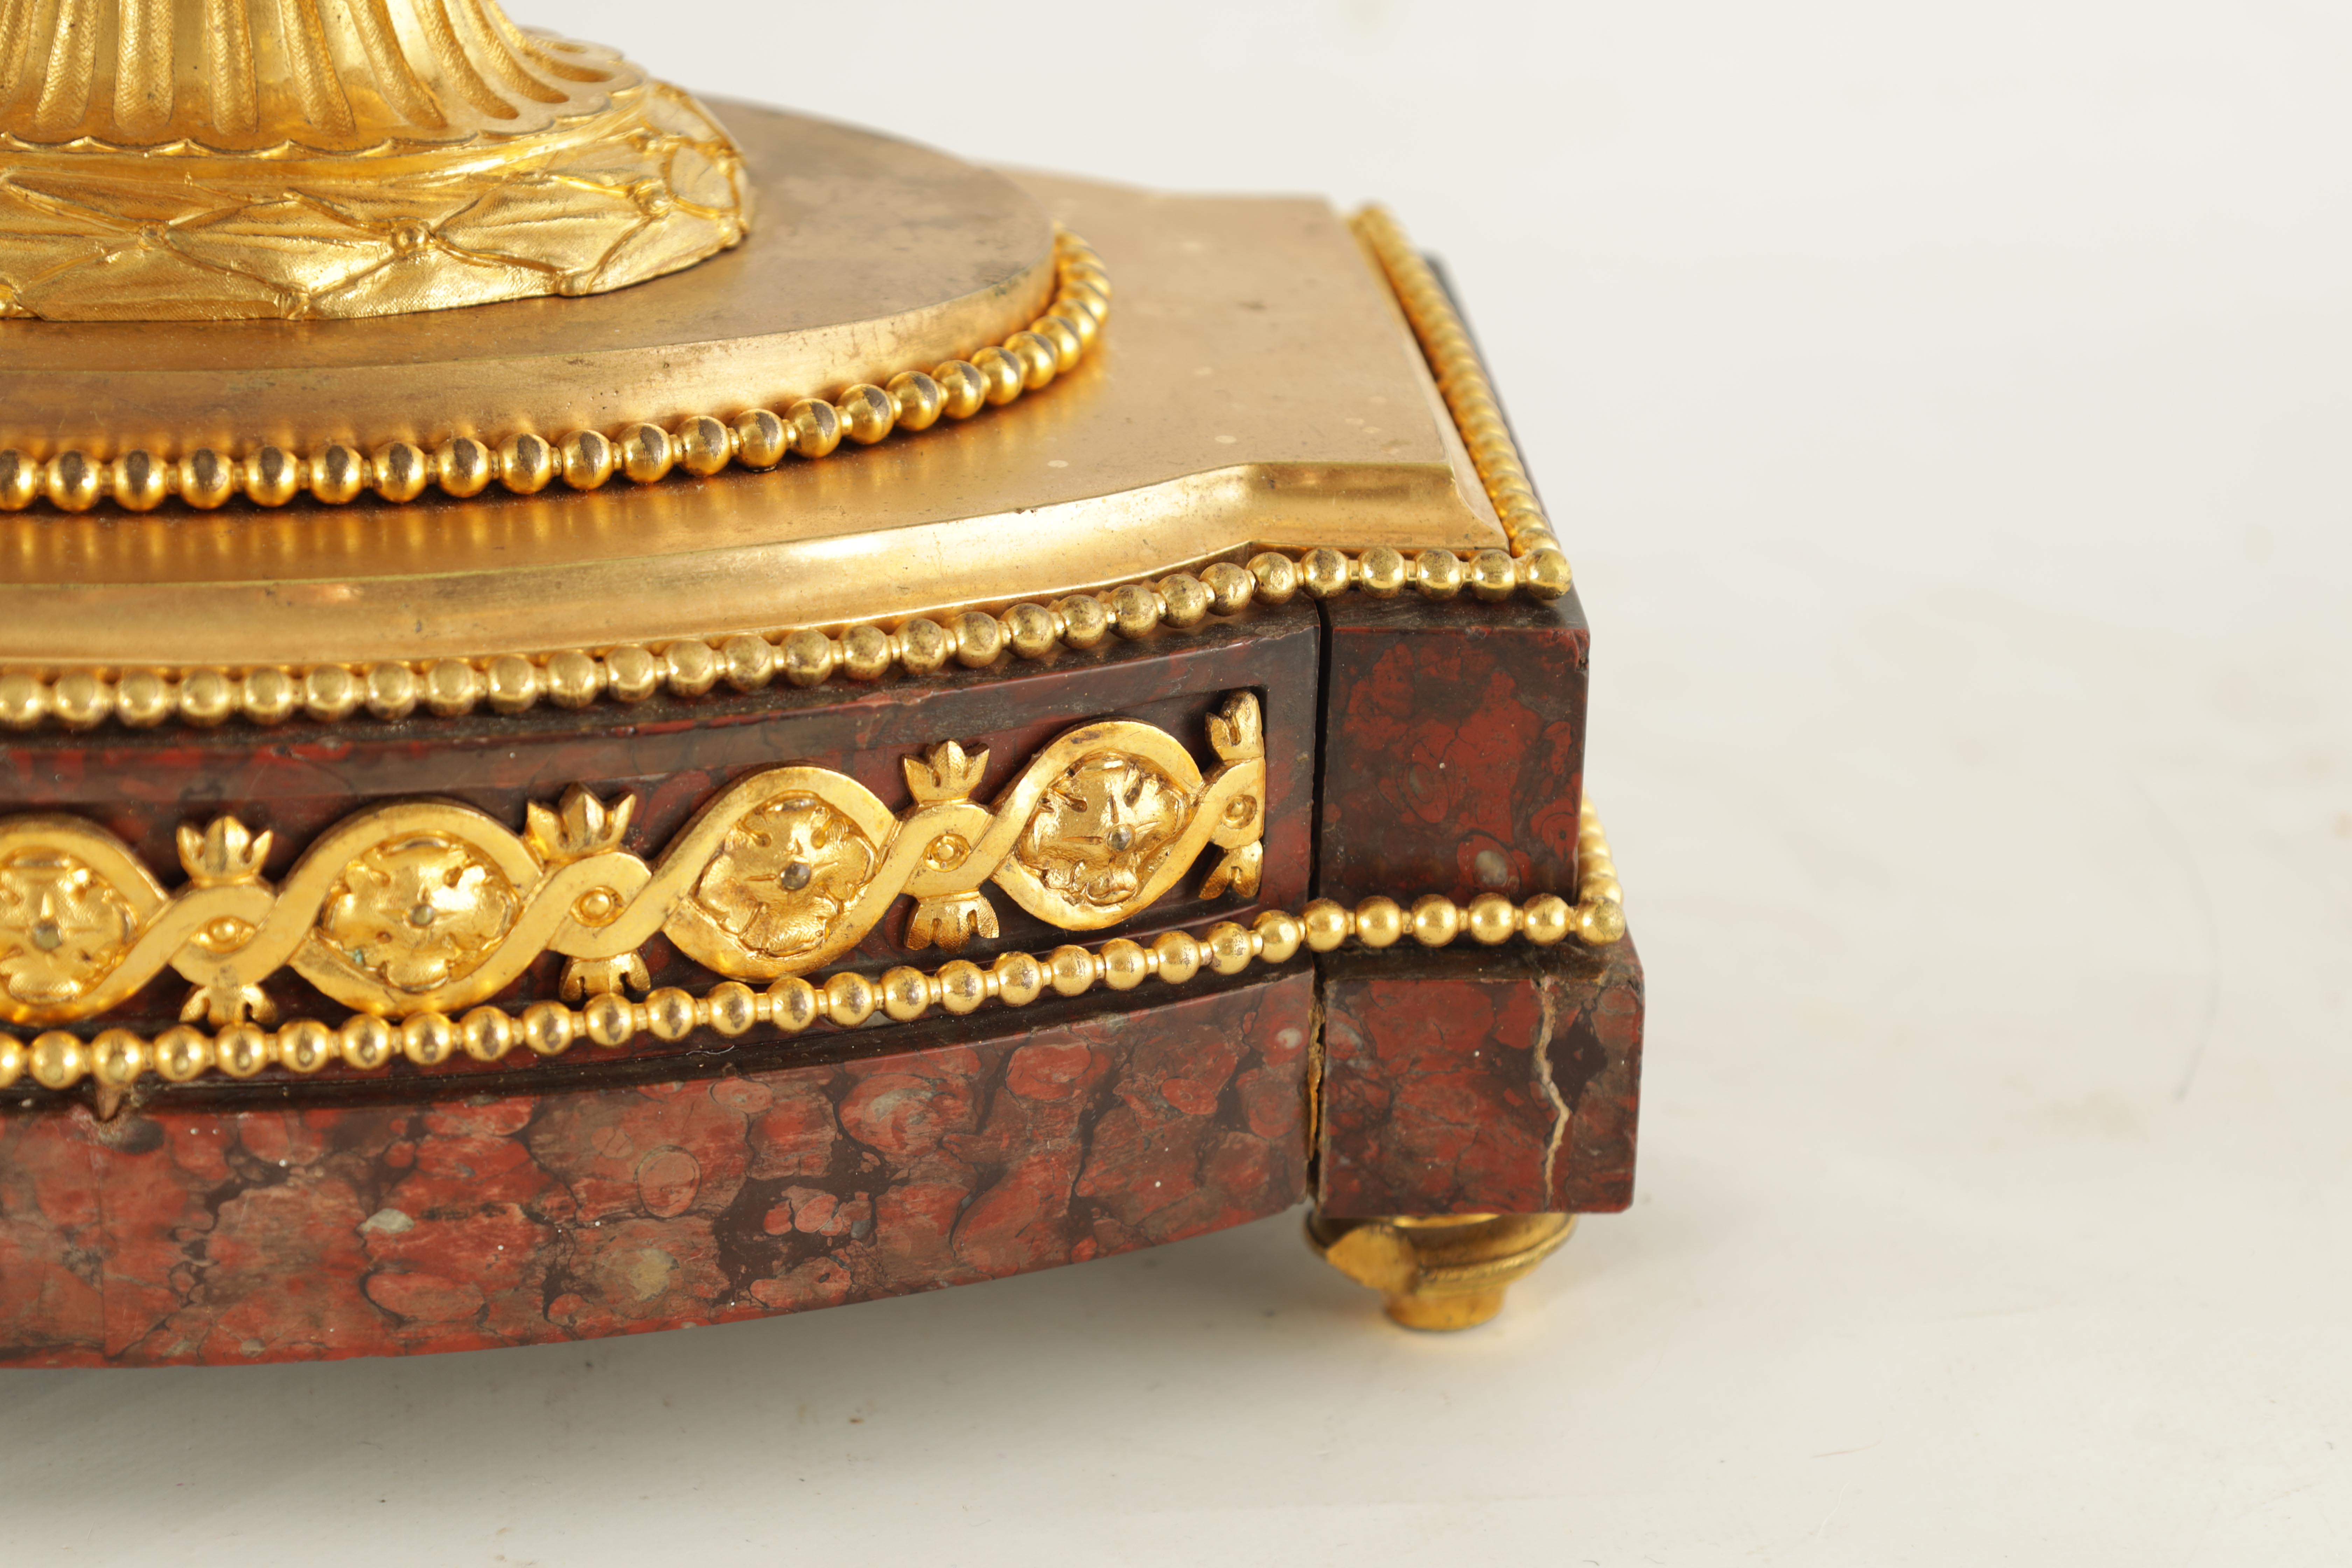 GASTON JOLY, A PARIS AN IMPRESSIVE EARLY 19TH CENTURY FRENCH ORMOLU AND ROUGE MARBLE URN SHAPED - Image 3 of 7